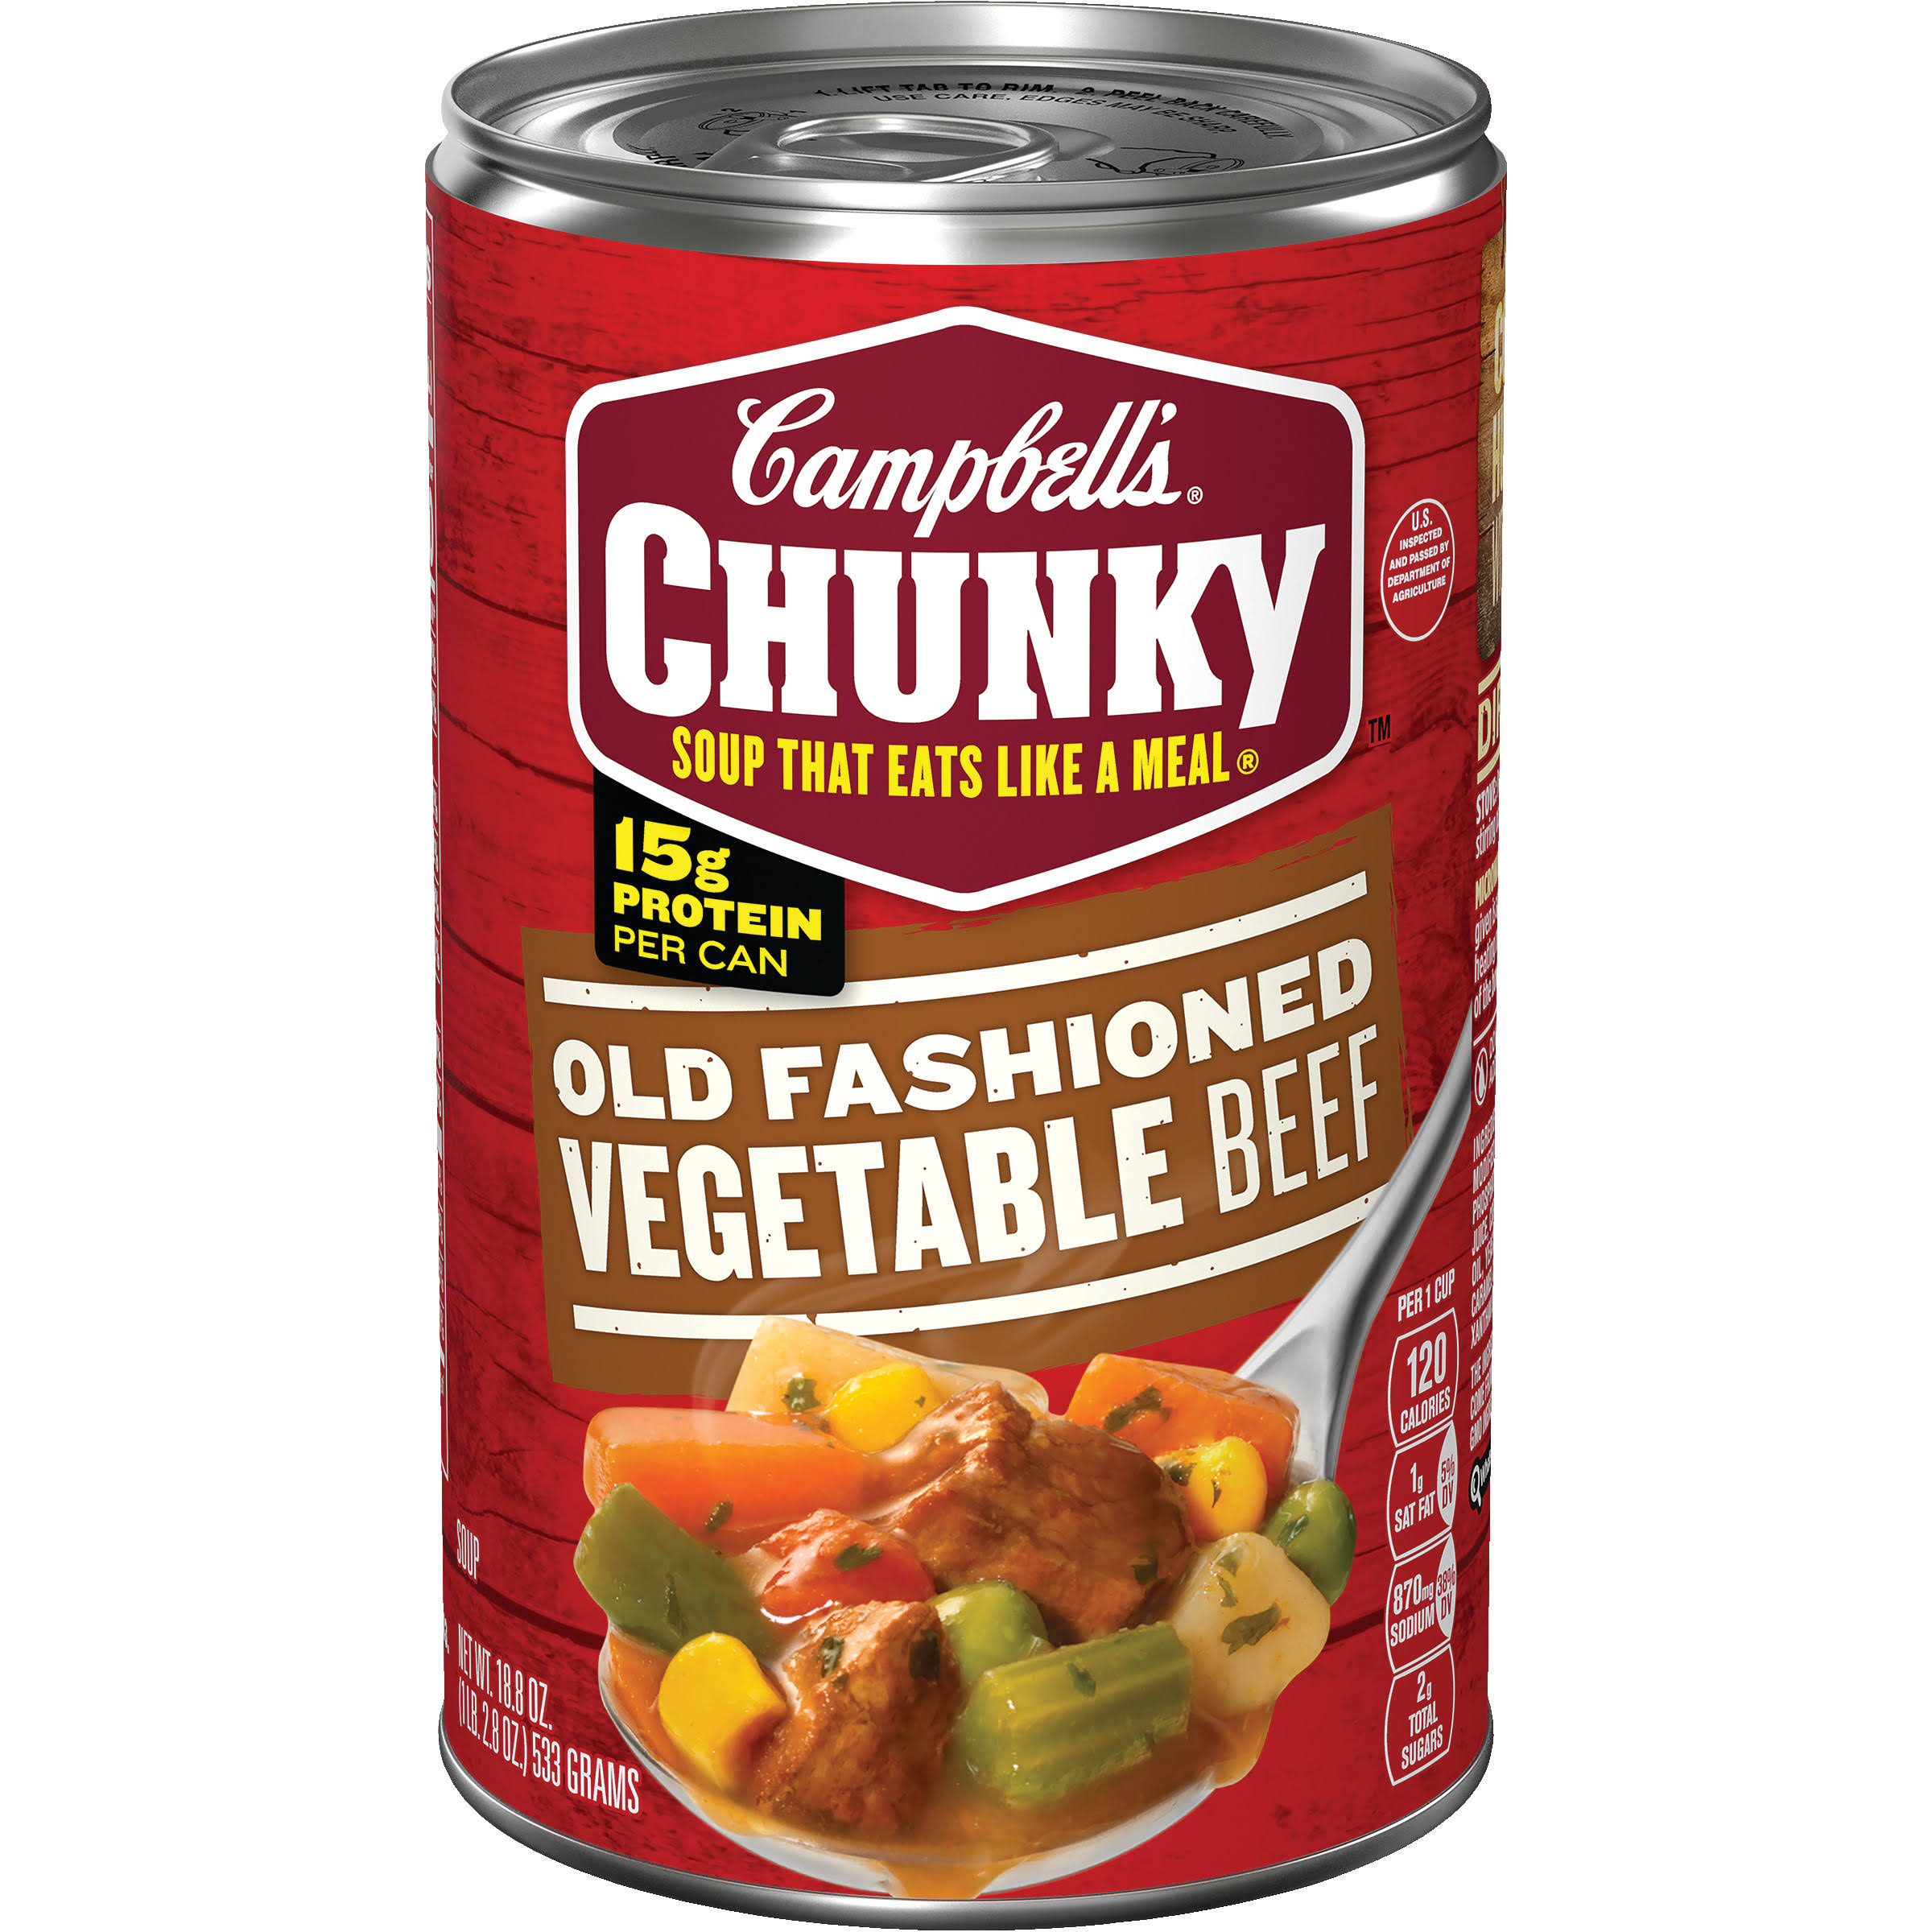 Campbell's Chunky Old Fashioned Vegetable Beef Soup - 18.8oz